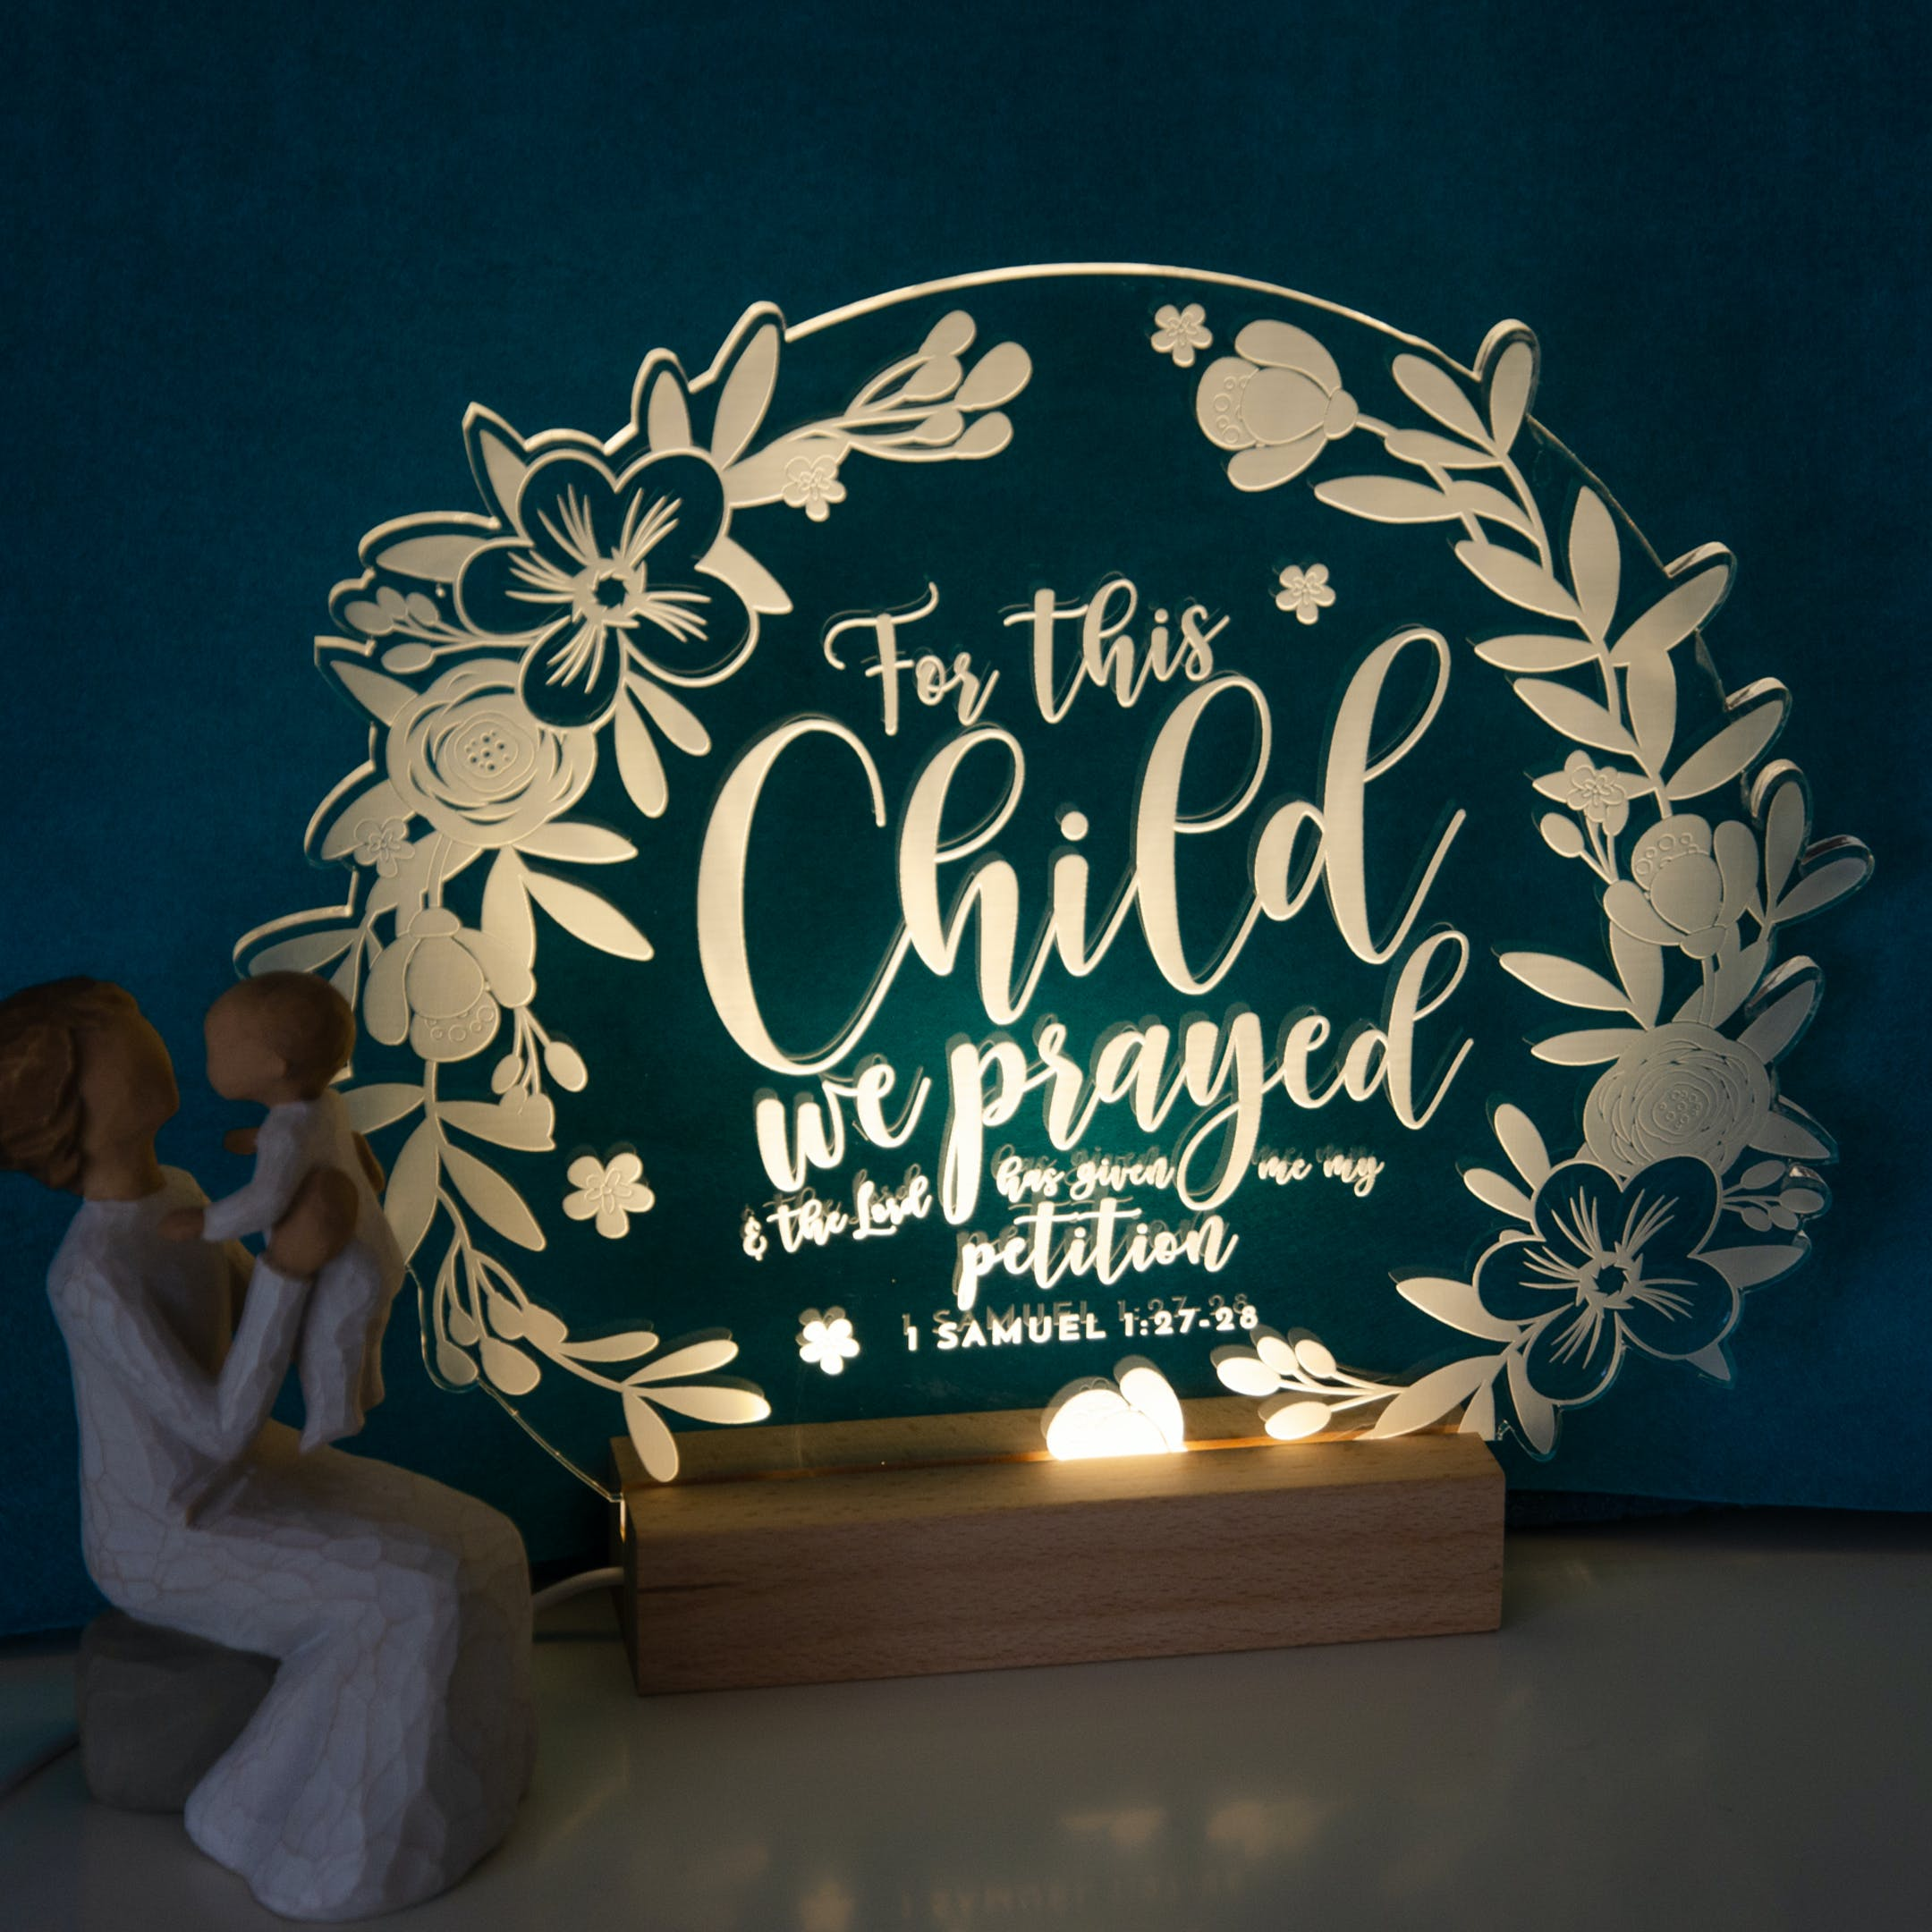 For This Child We Prayed Night Light by Birch and Tides at Cheerfully Given